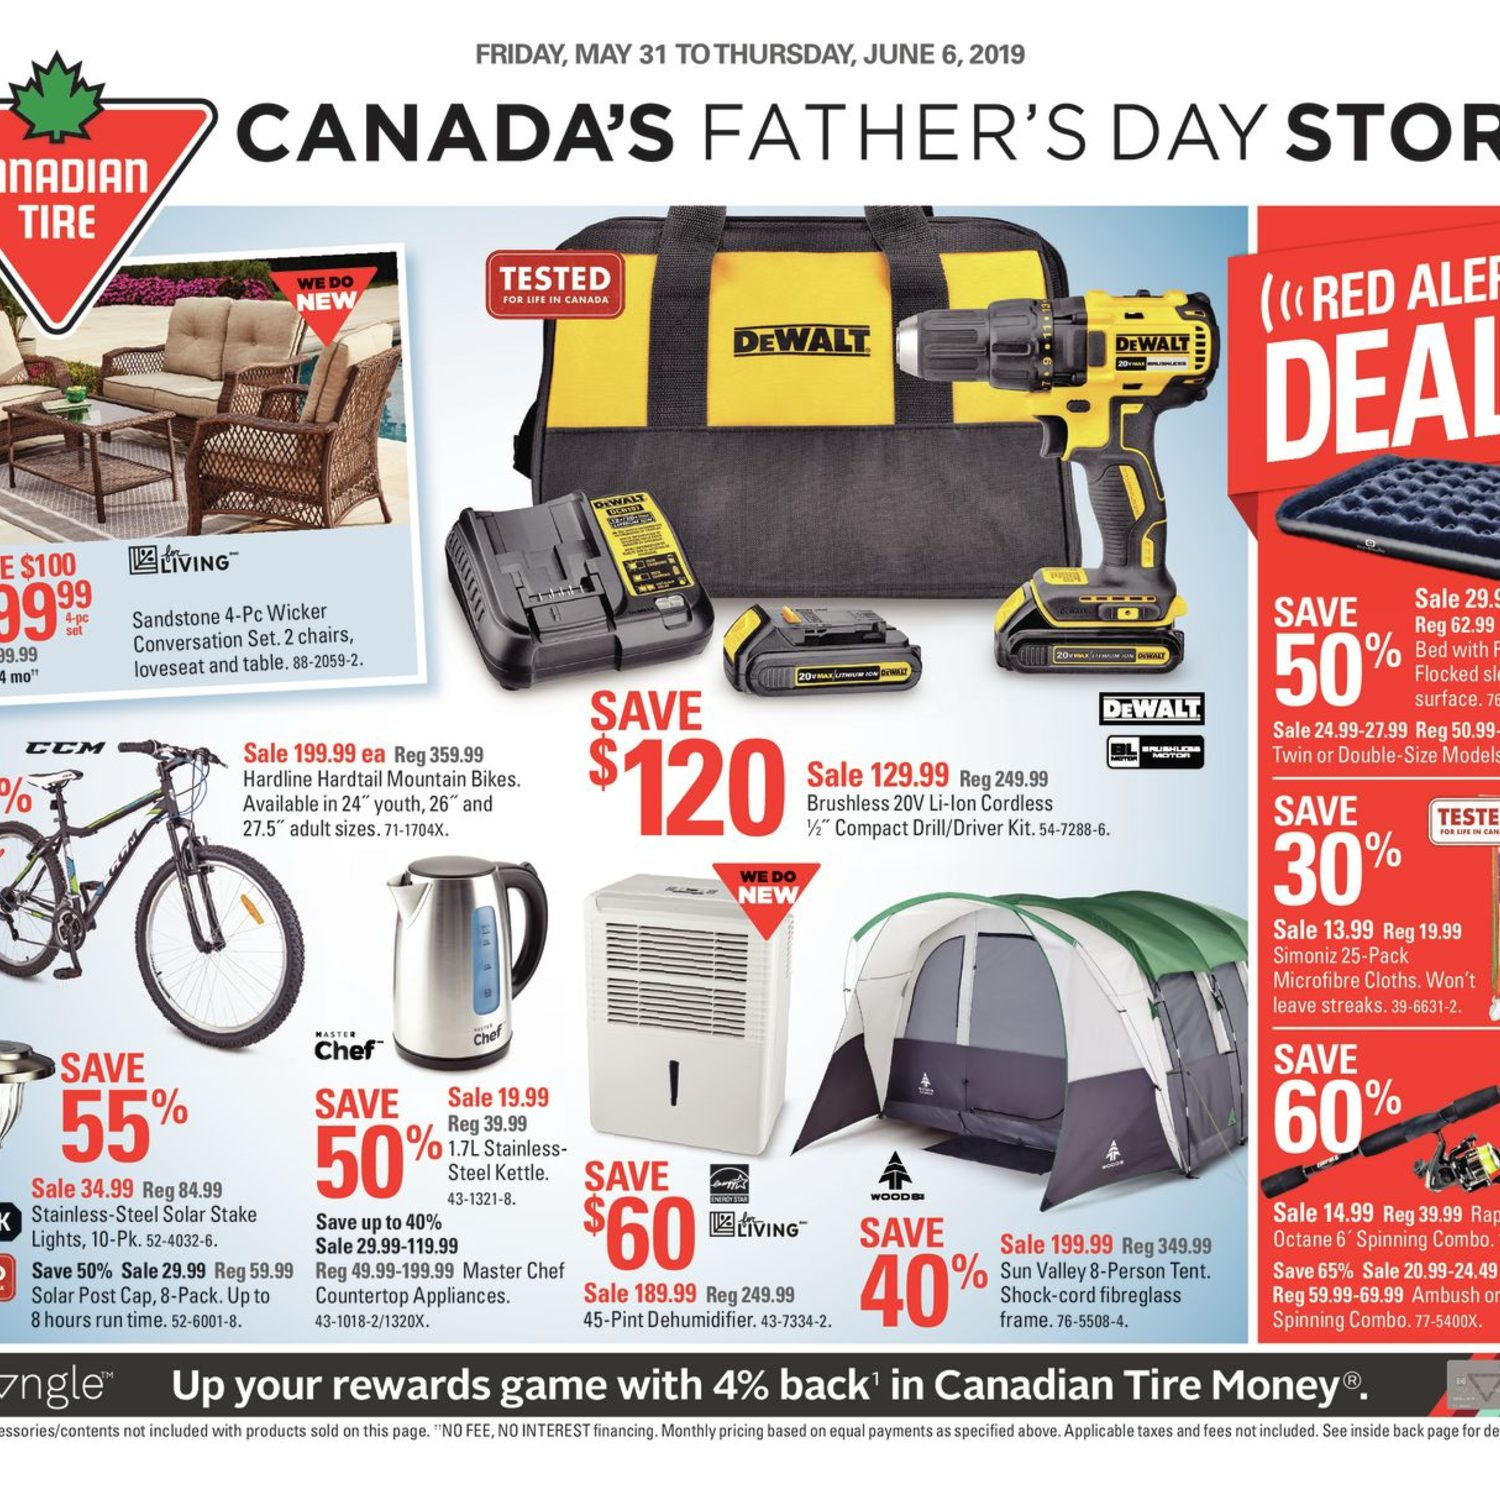 Canadian Tire Weekly Flyer - Weekly - Canada's Father's Day